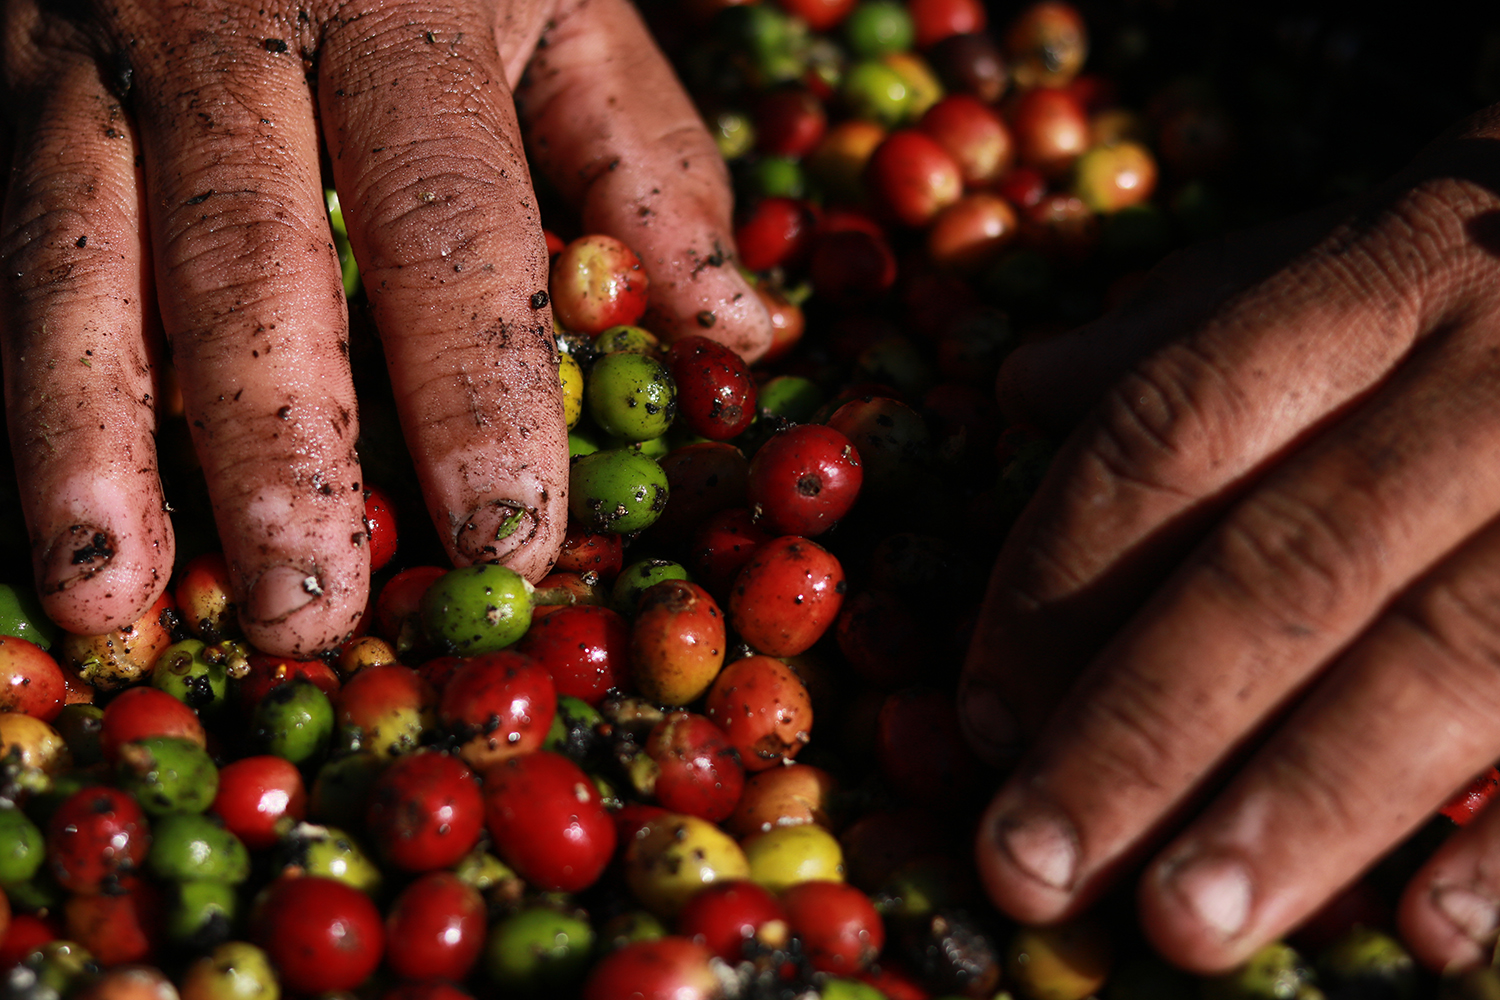 Hands are placed on top of a pile of red coffee beans